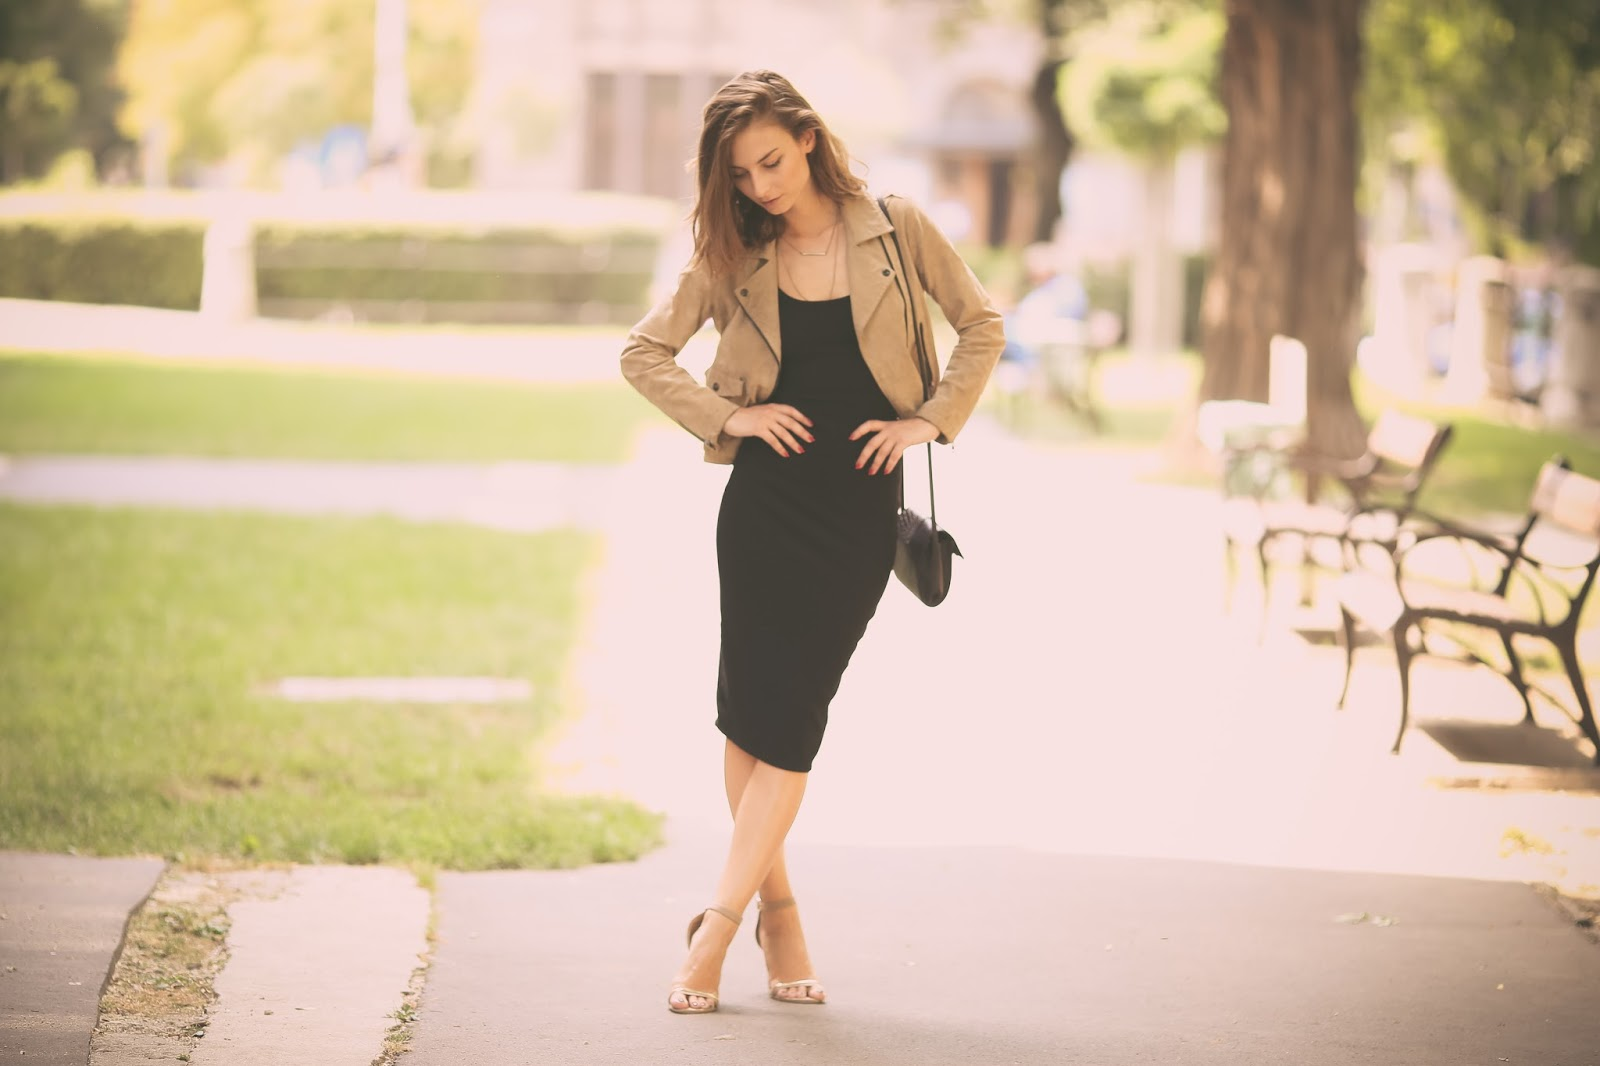 WEARING THE LITTLE BLACK DRESS WITH A BEIGE JACKET | What Vero Wears